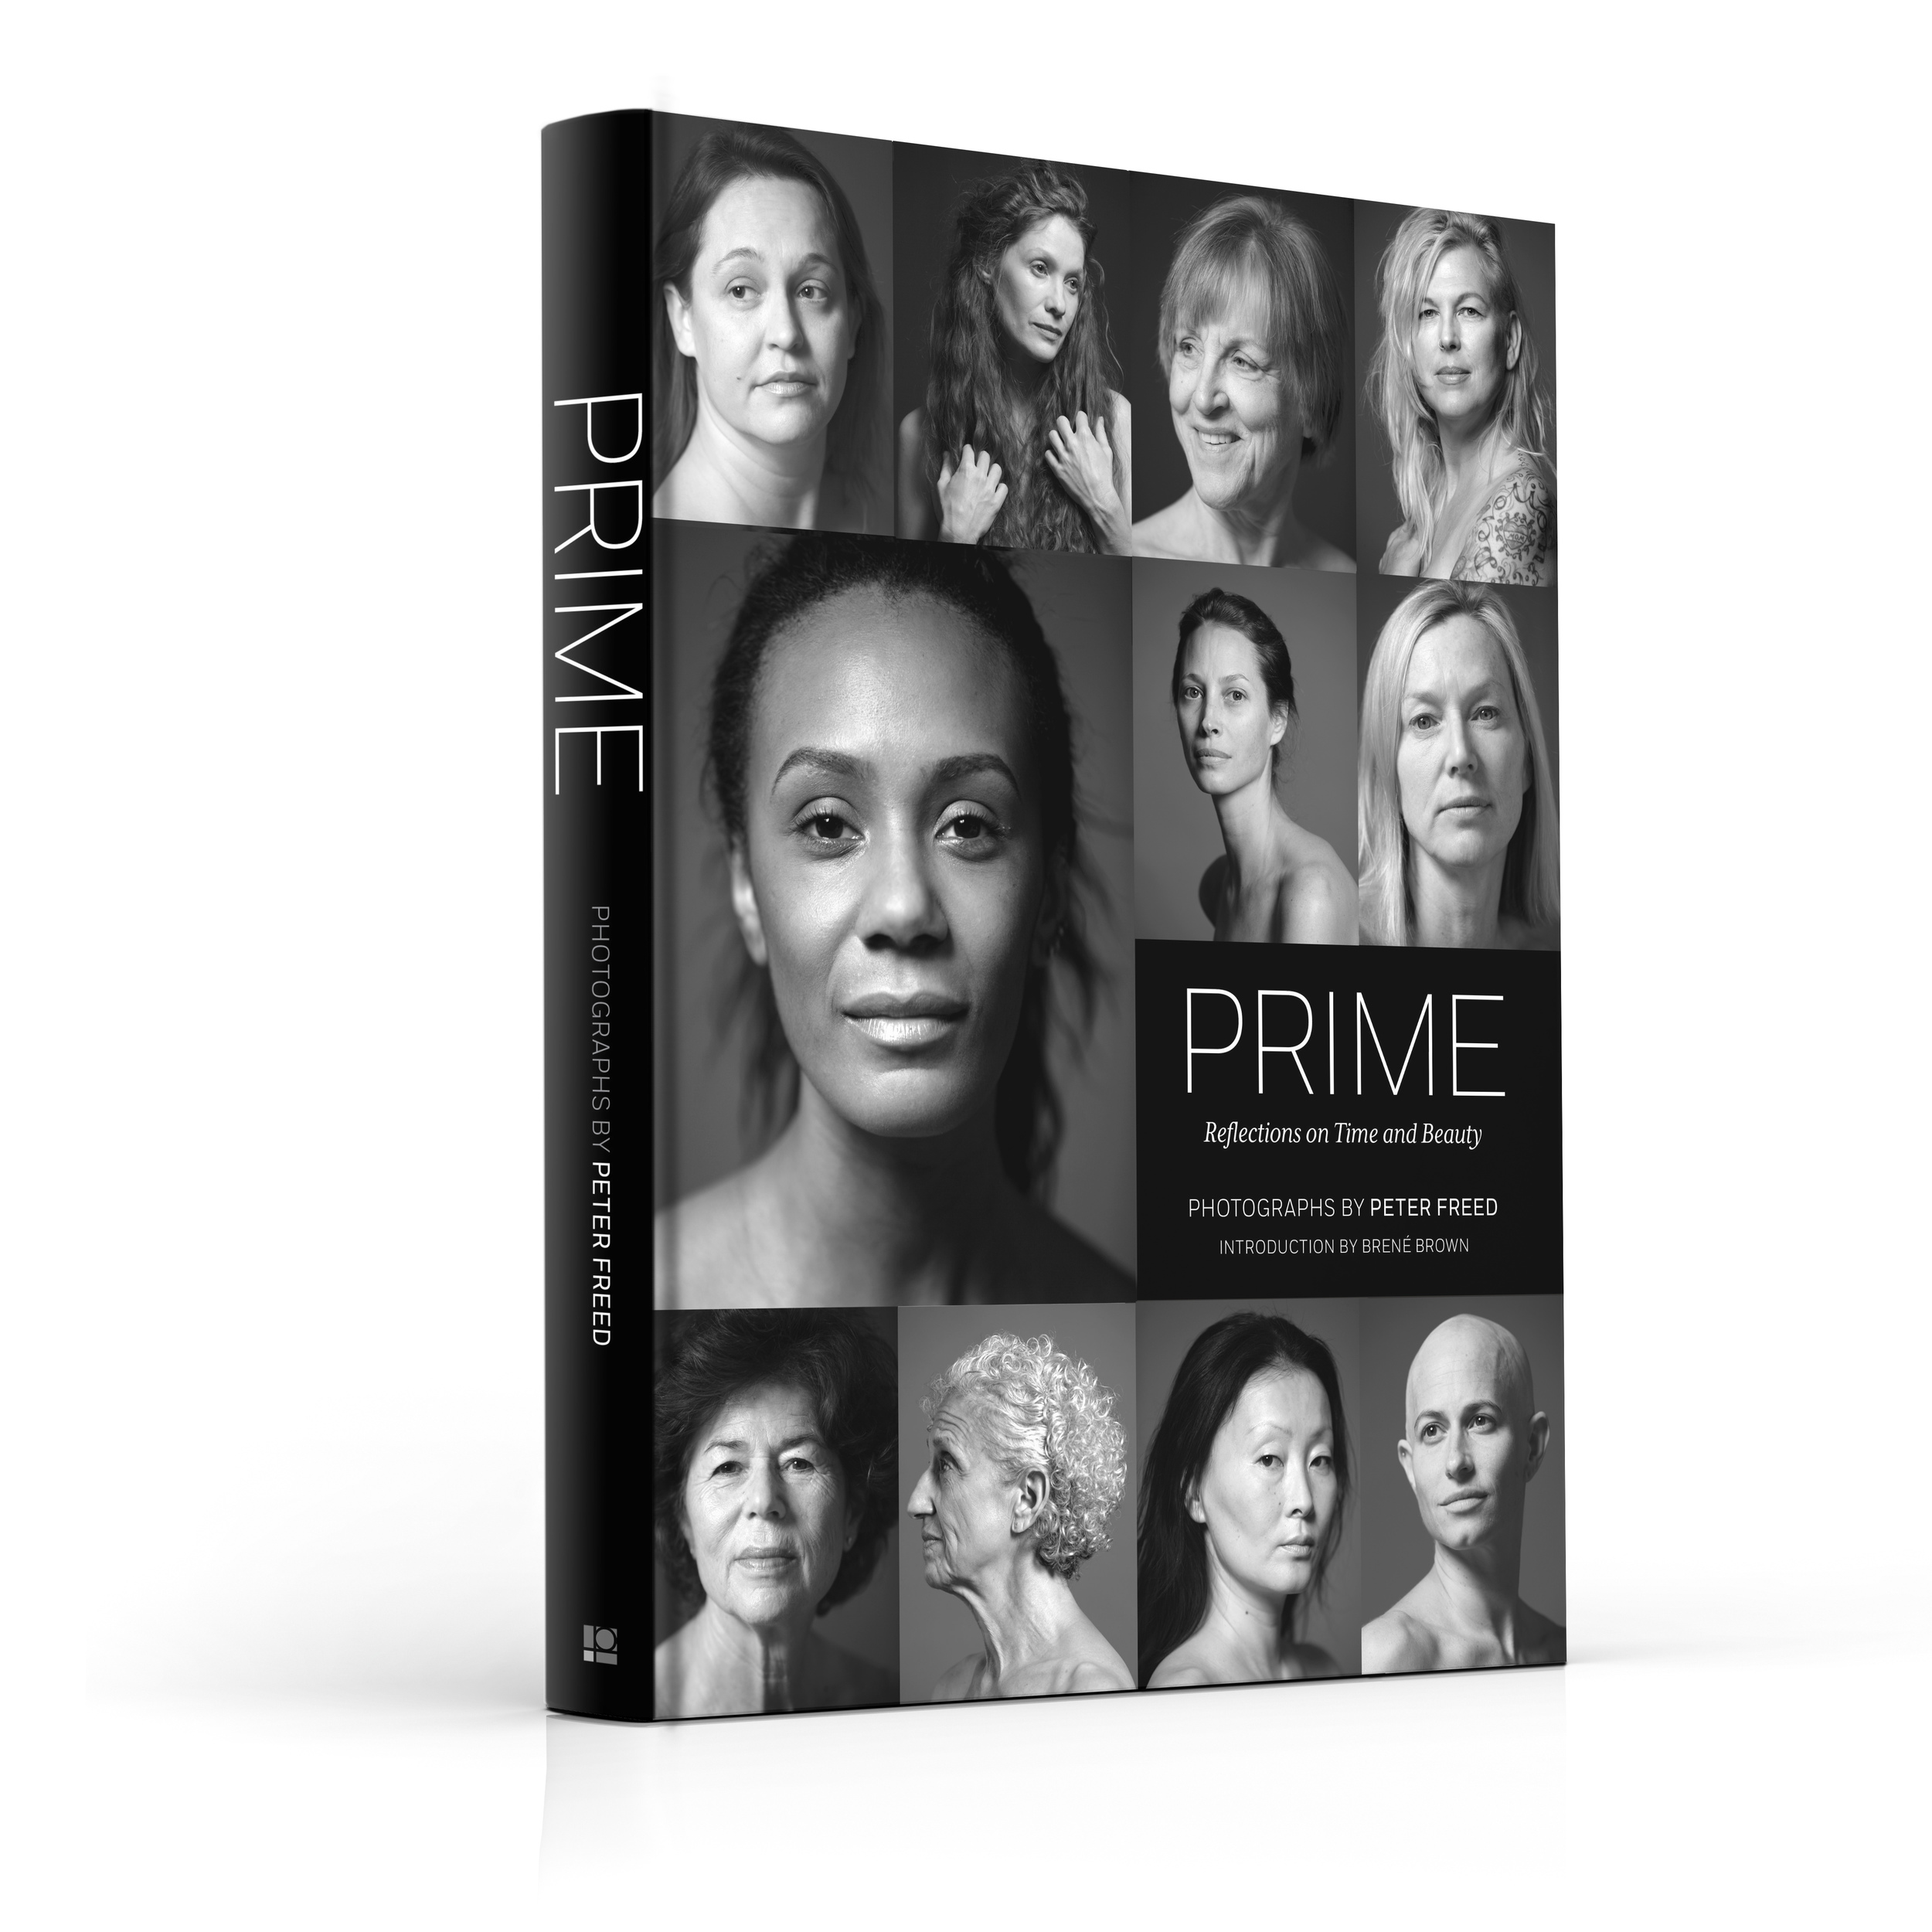 Prime: Reflections on Time and Beauty | Photographs by Peter Freed